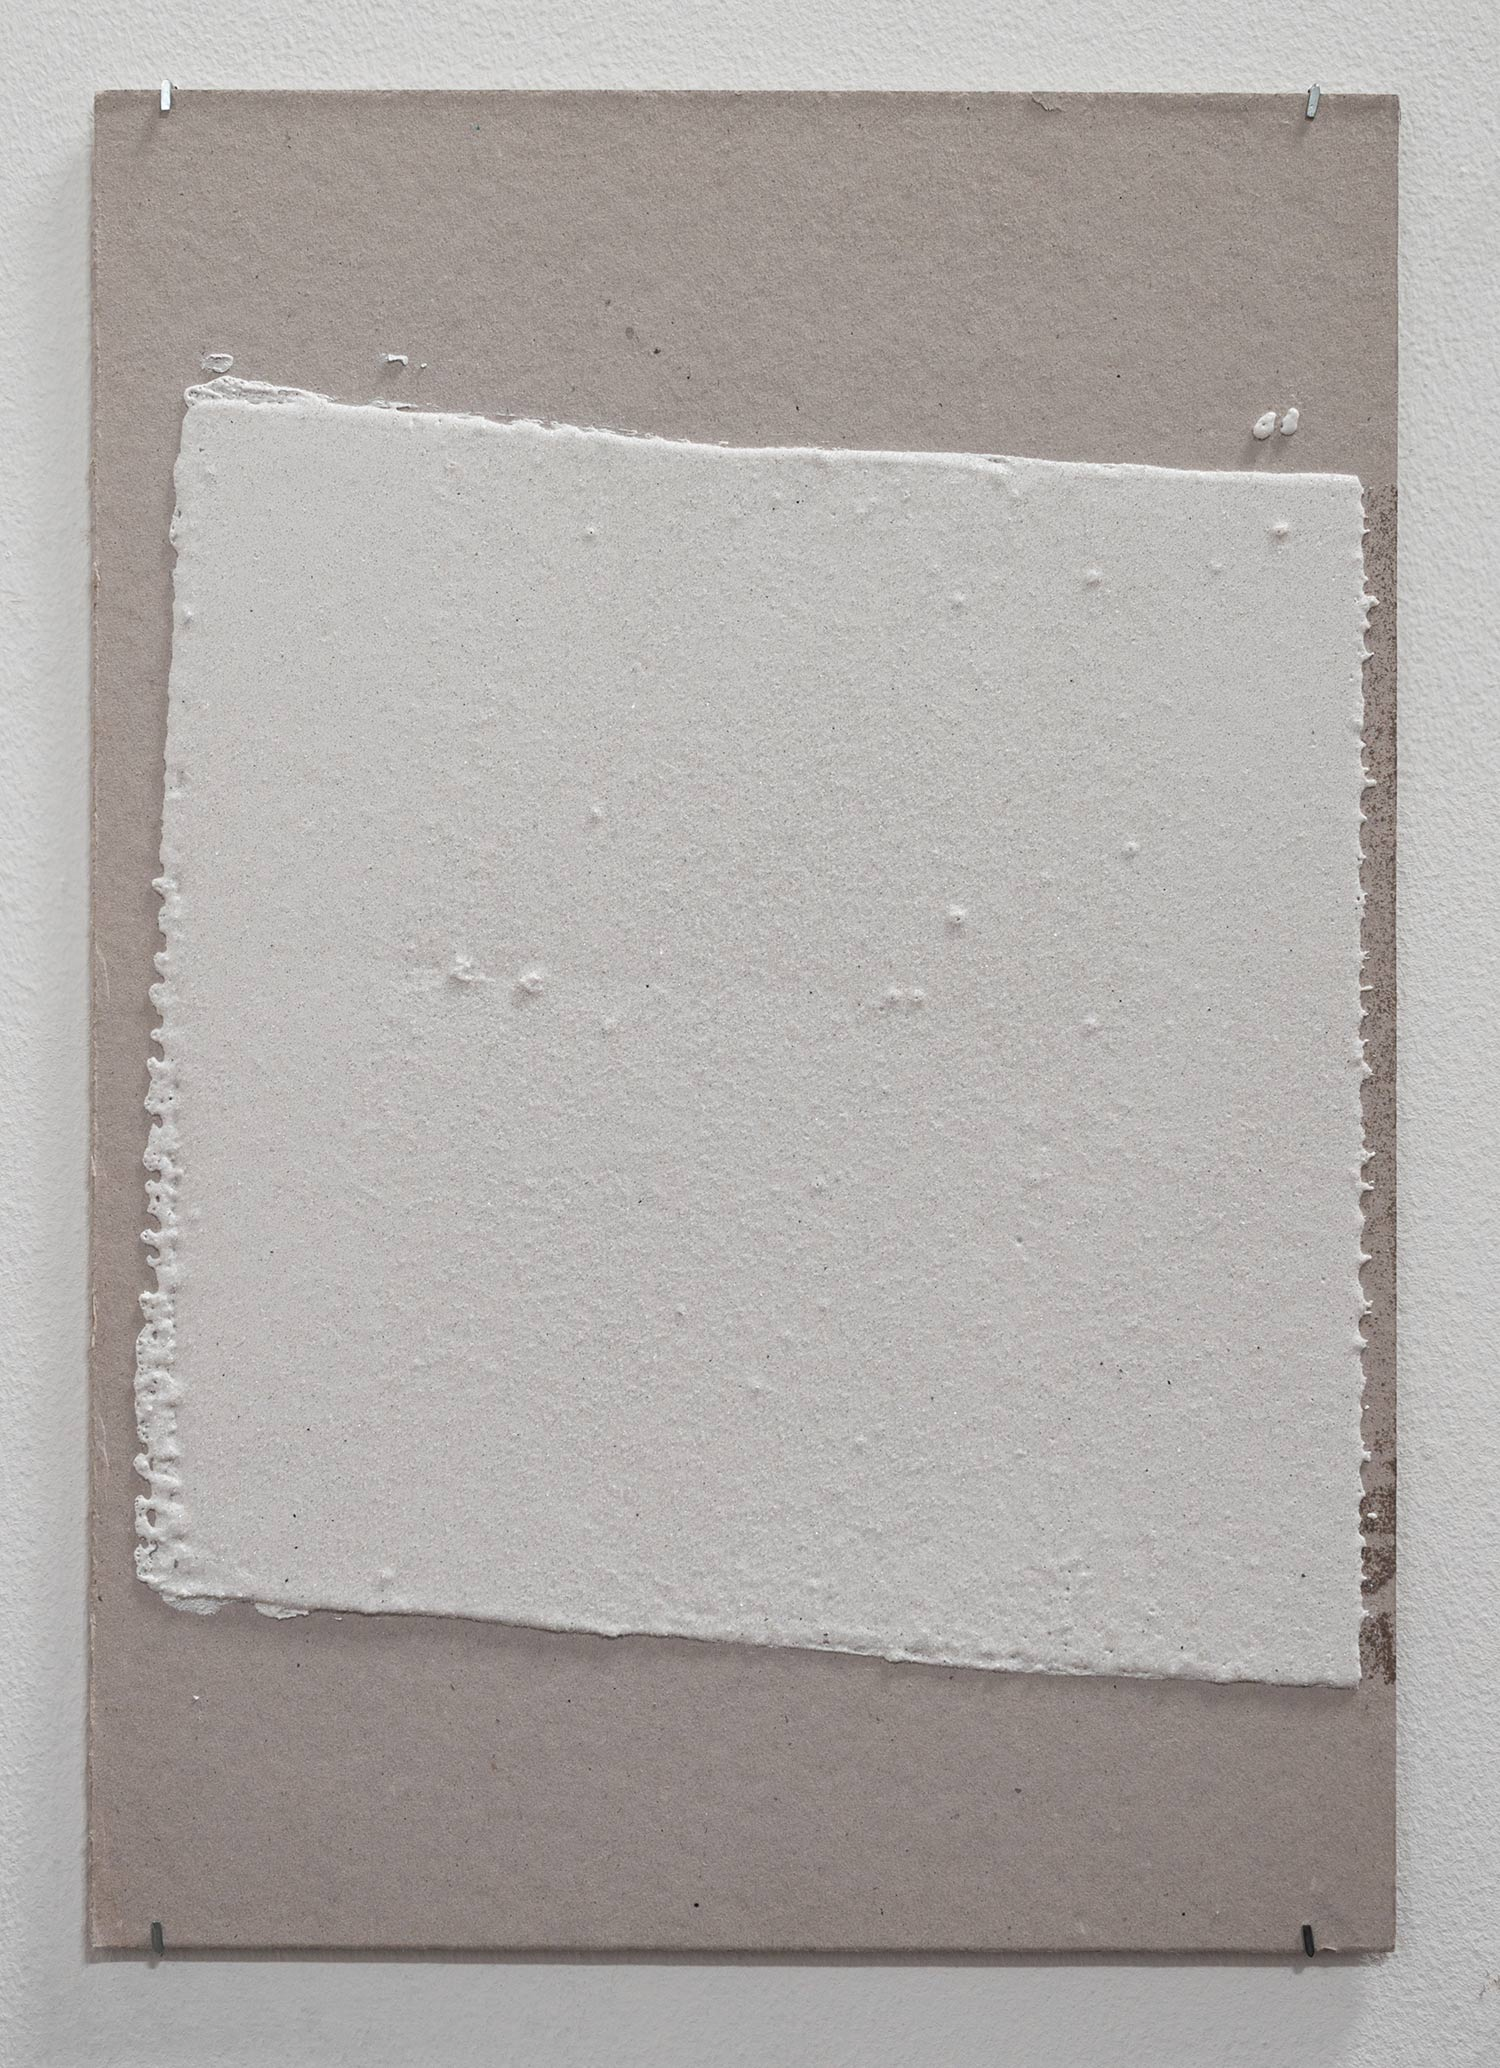 300mm (W), 1.5mm (T), white, Random mark, hand marking, Al Barsha 1, St 11,  2016  Thermoplastic paint and reflective glass particles on grey board  35 x 50 cm